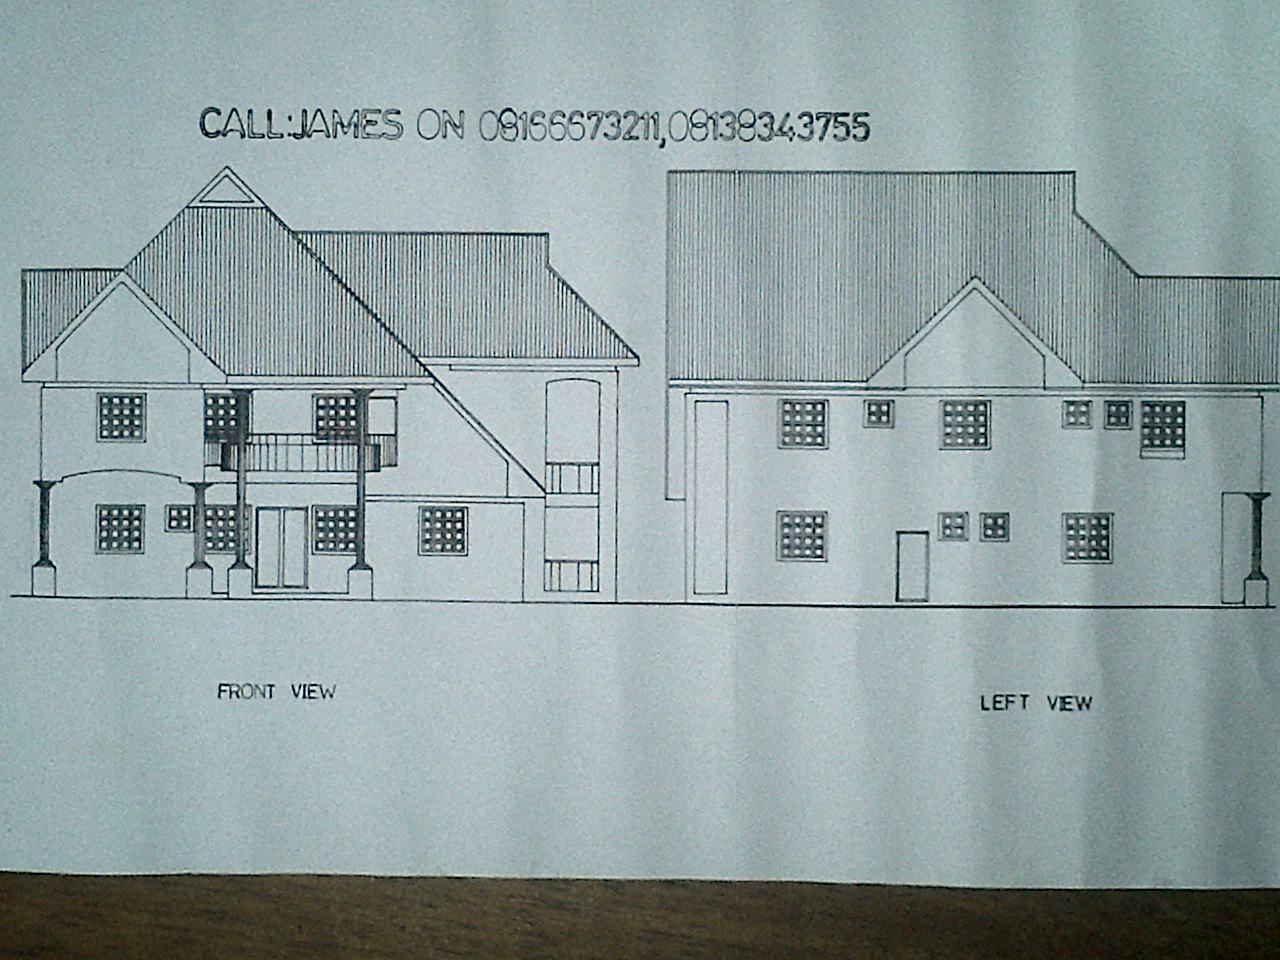 For your building plans çąℓℓ us on 08166673211